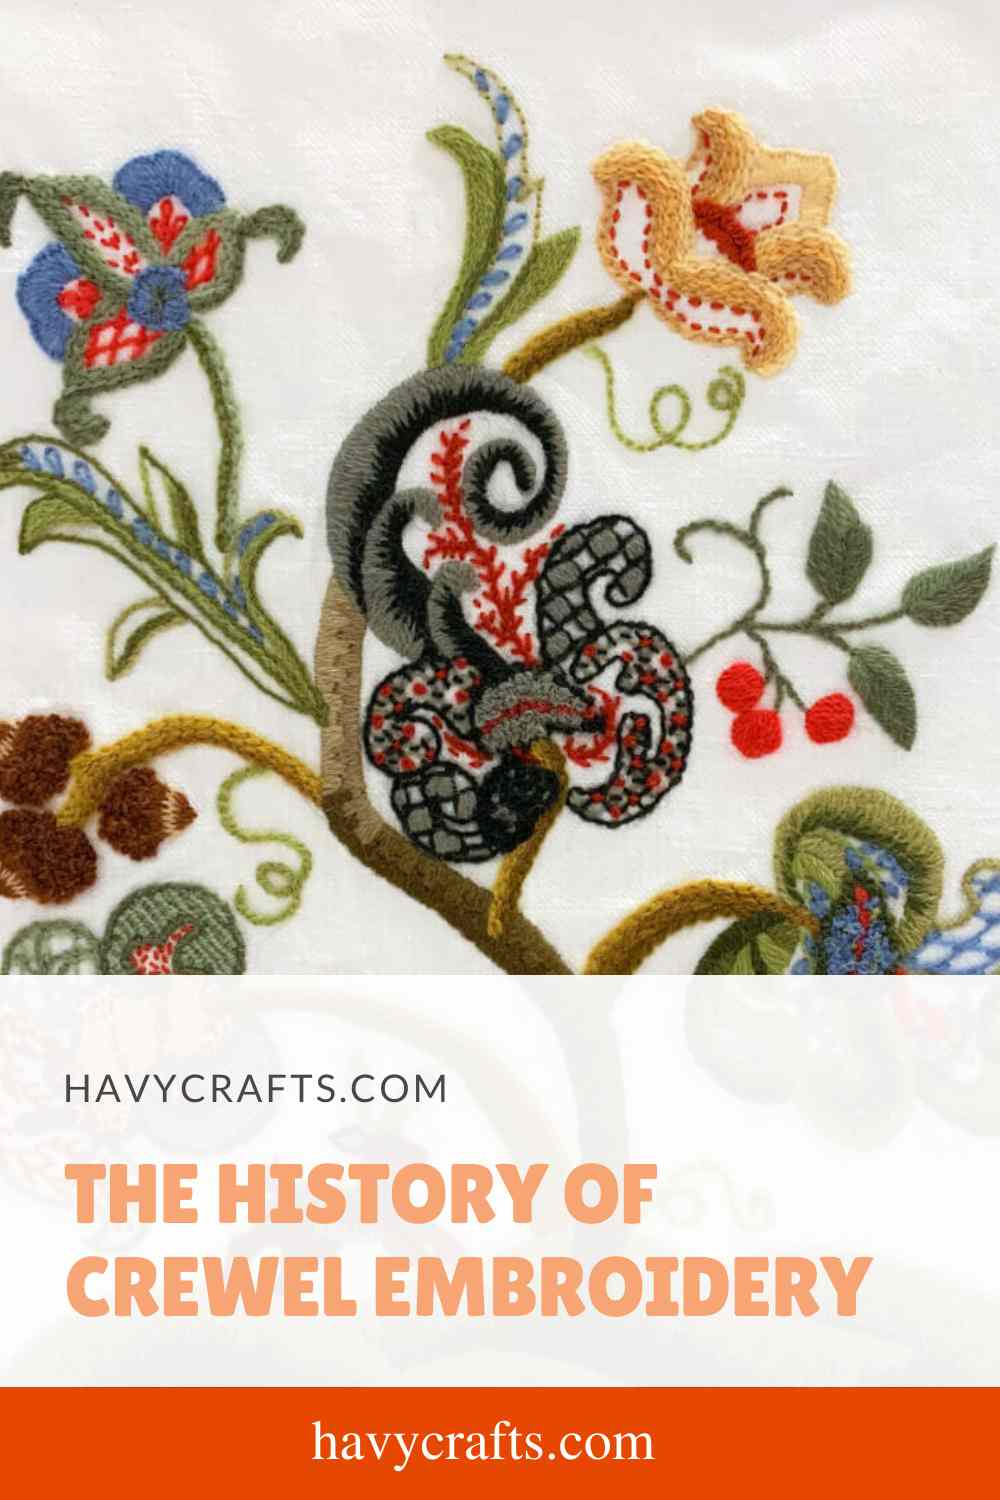 History of Crewel Embroidery